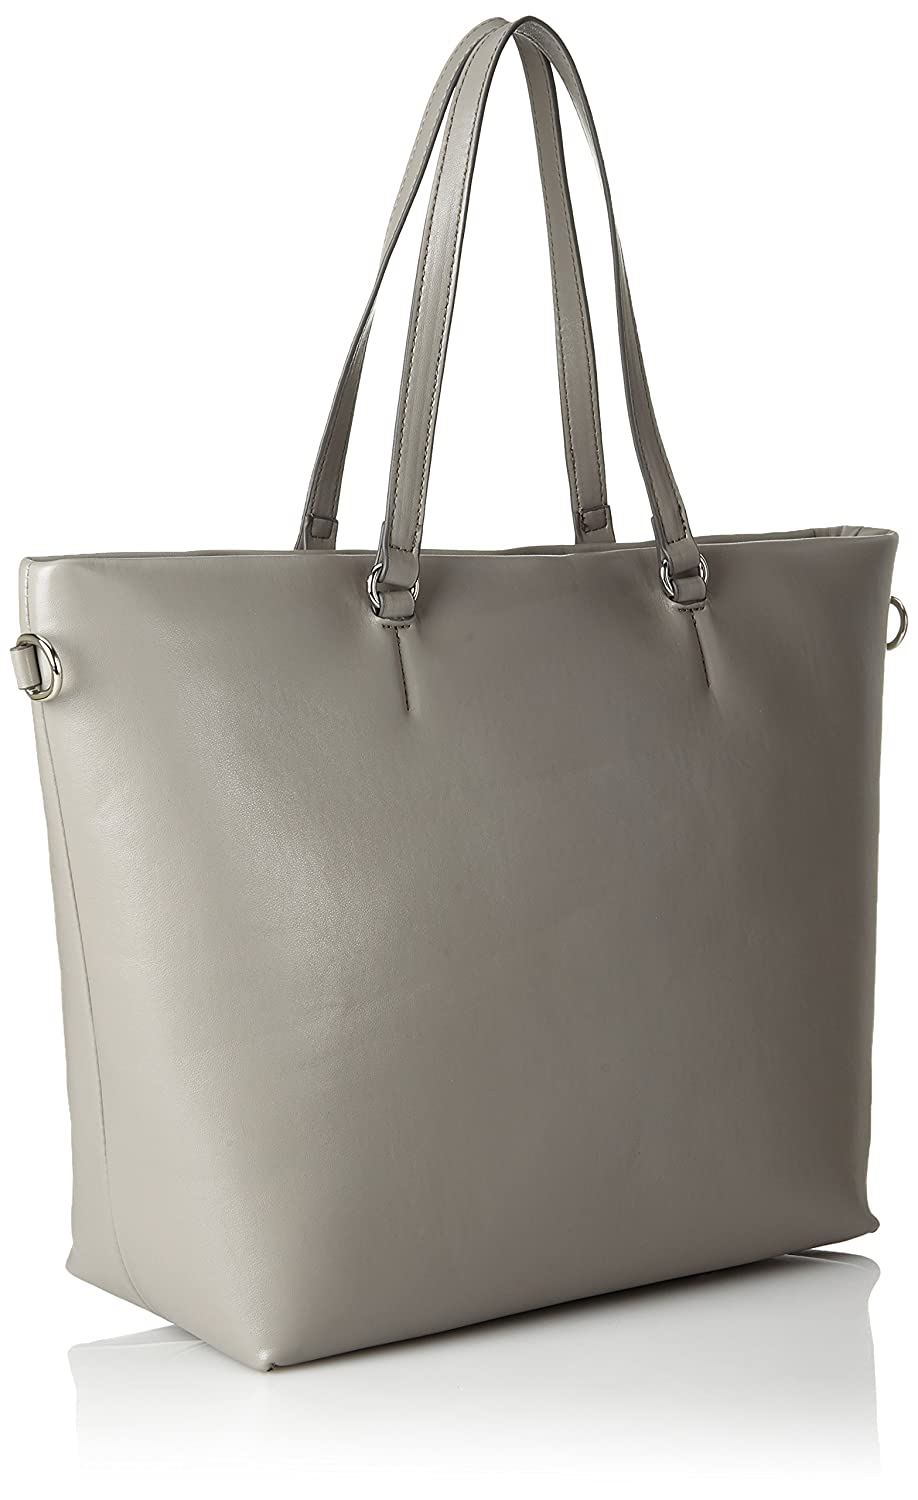 Damen Soft & Easy Shopper Lhz Tote Comma 9itP6W0Nq